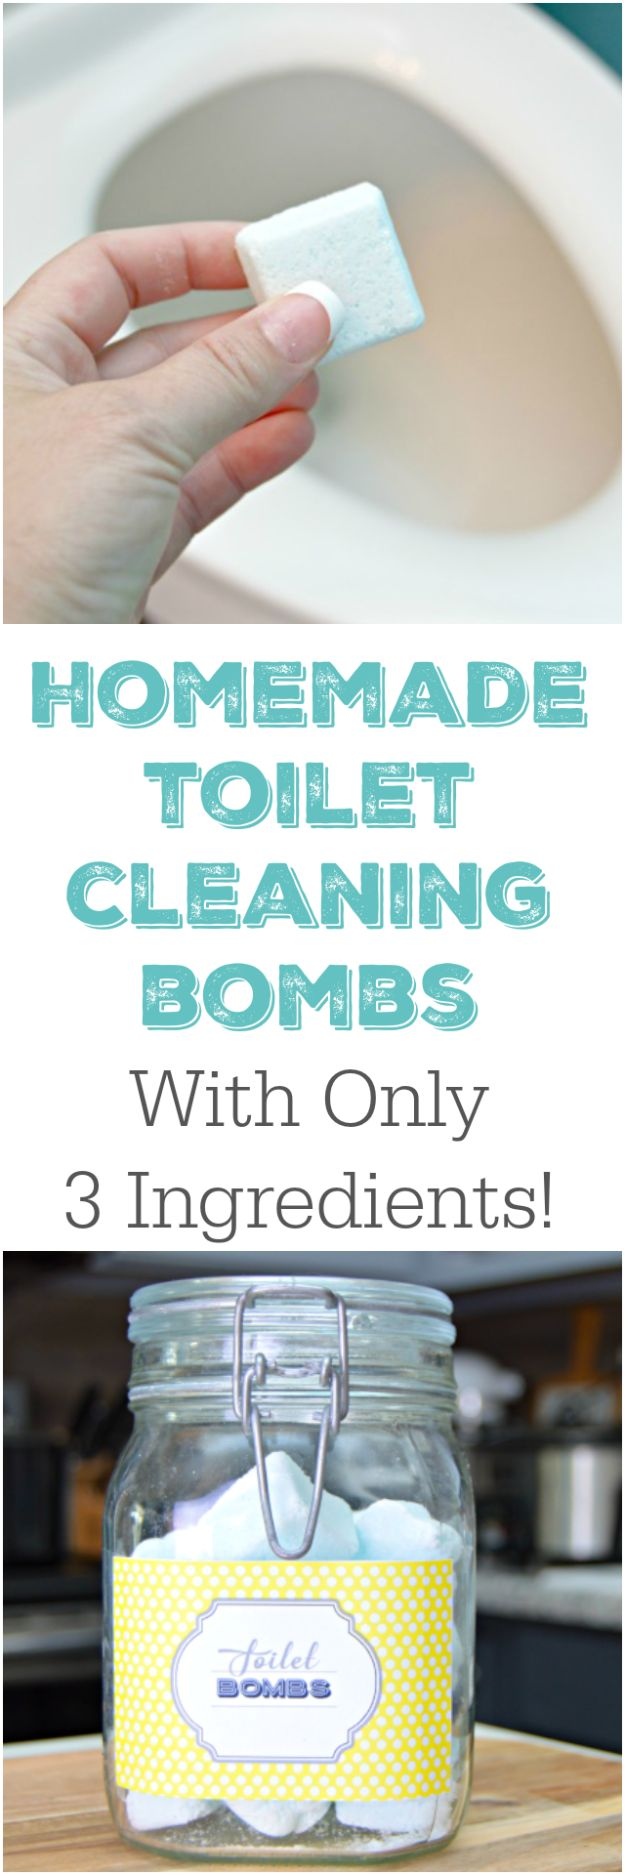 15 Homemade Natural Cleaning Products